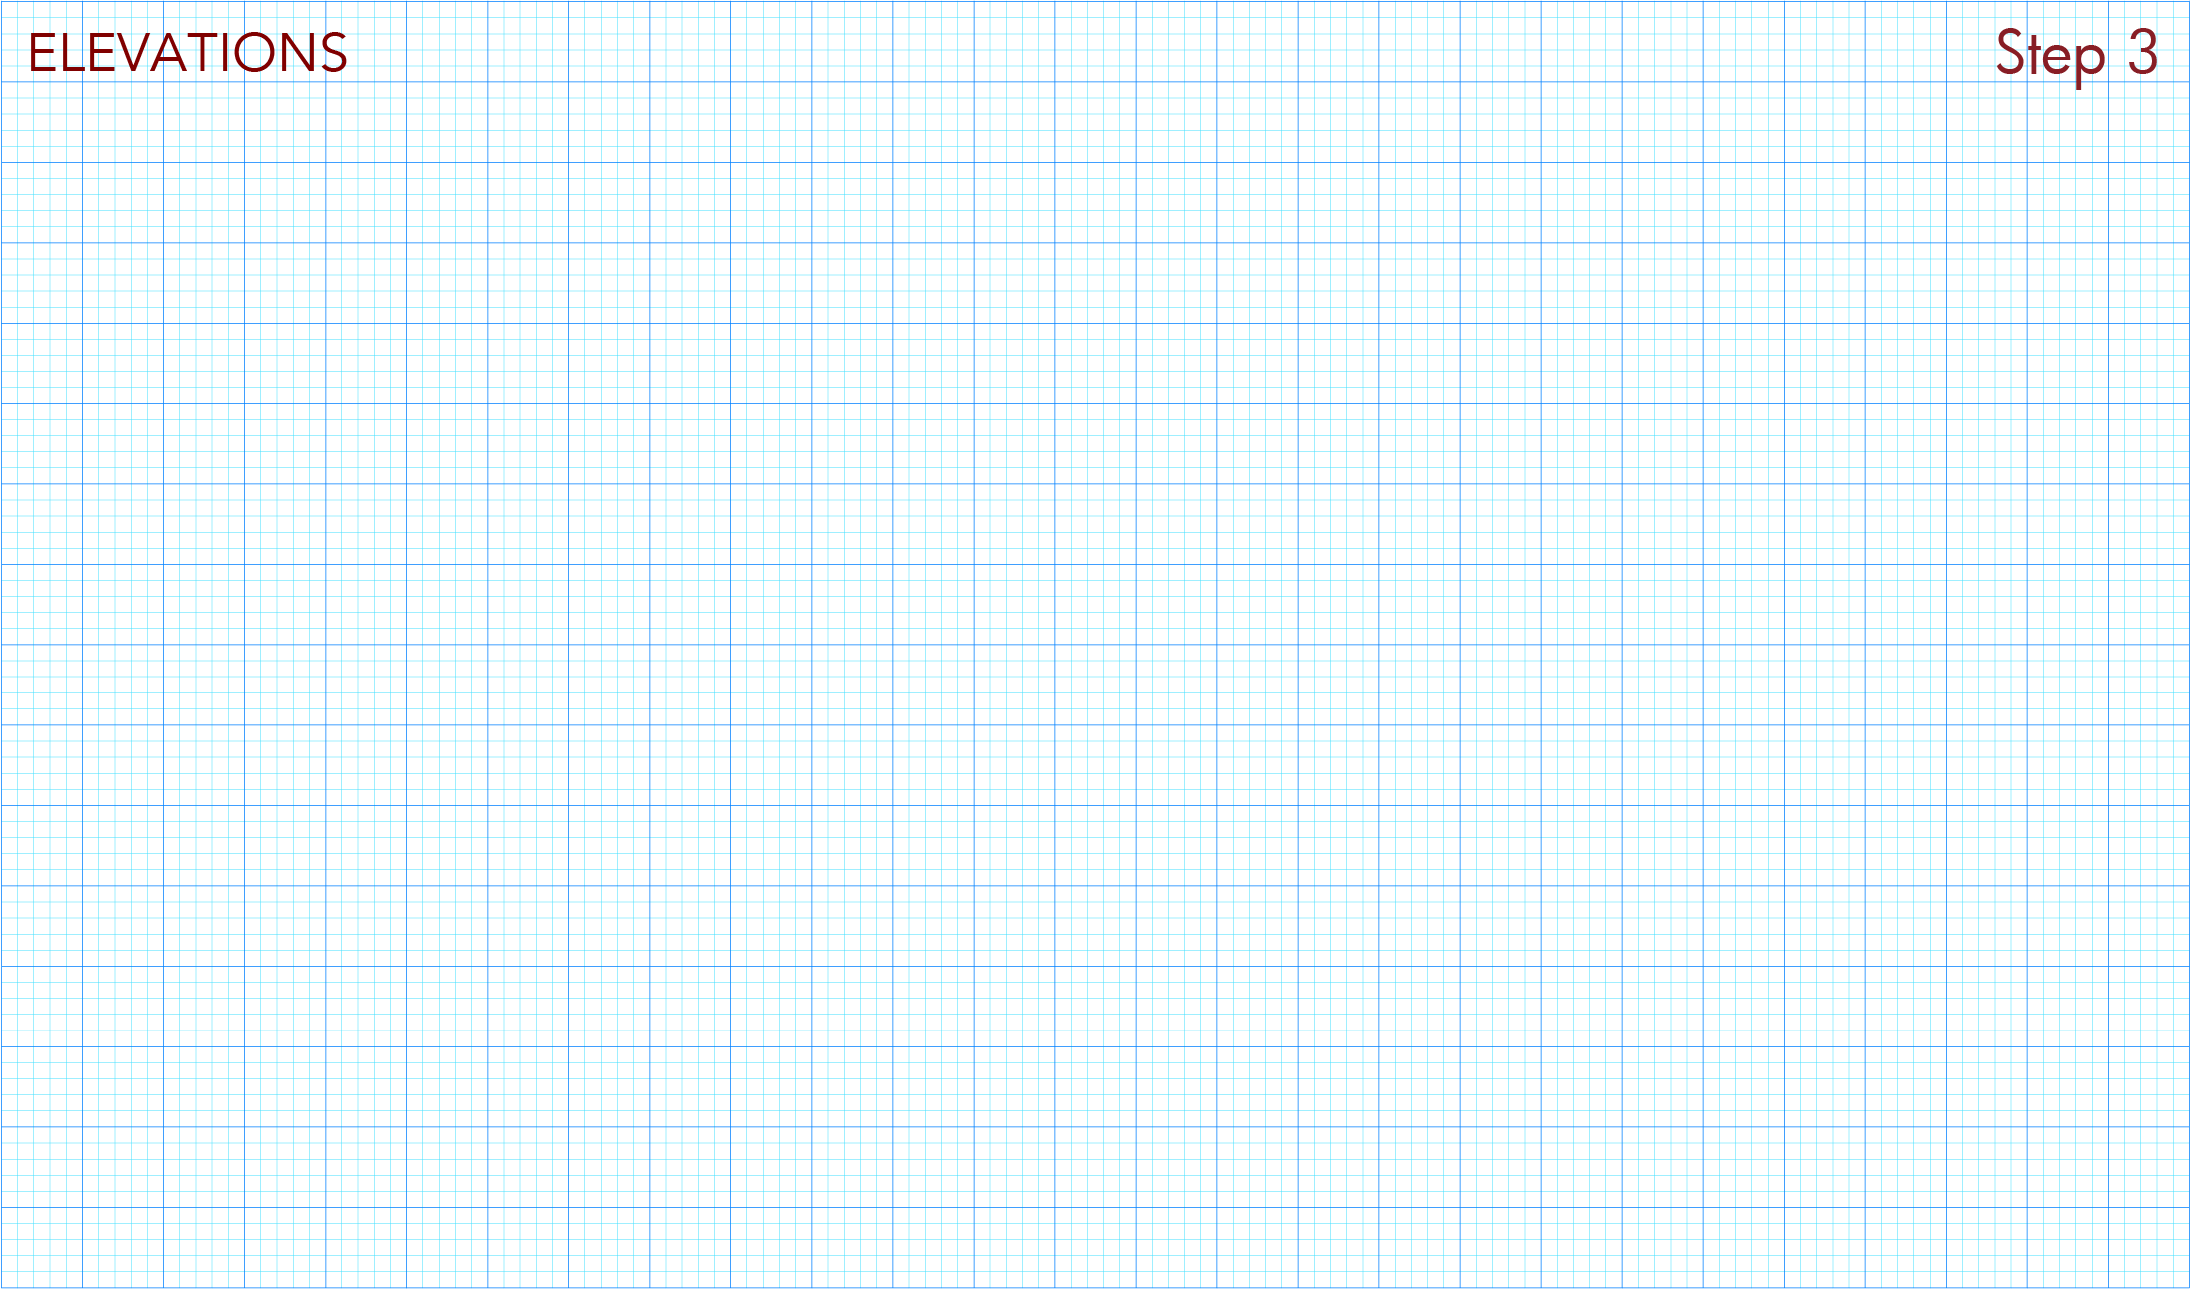 Download and print elevation graph paper